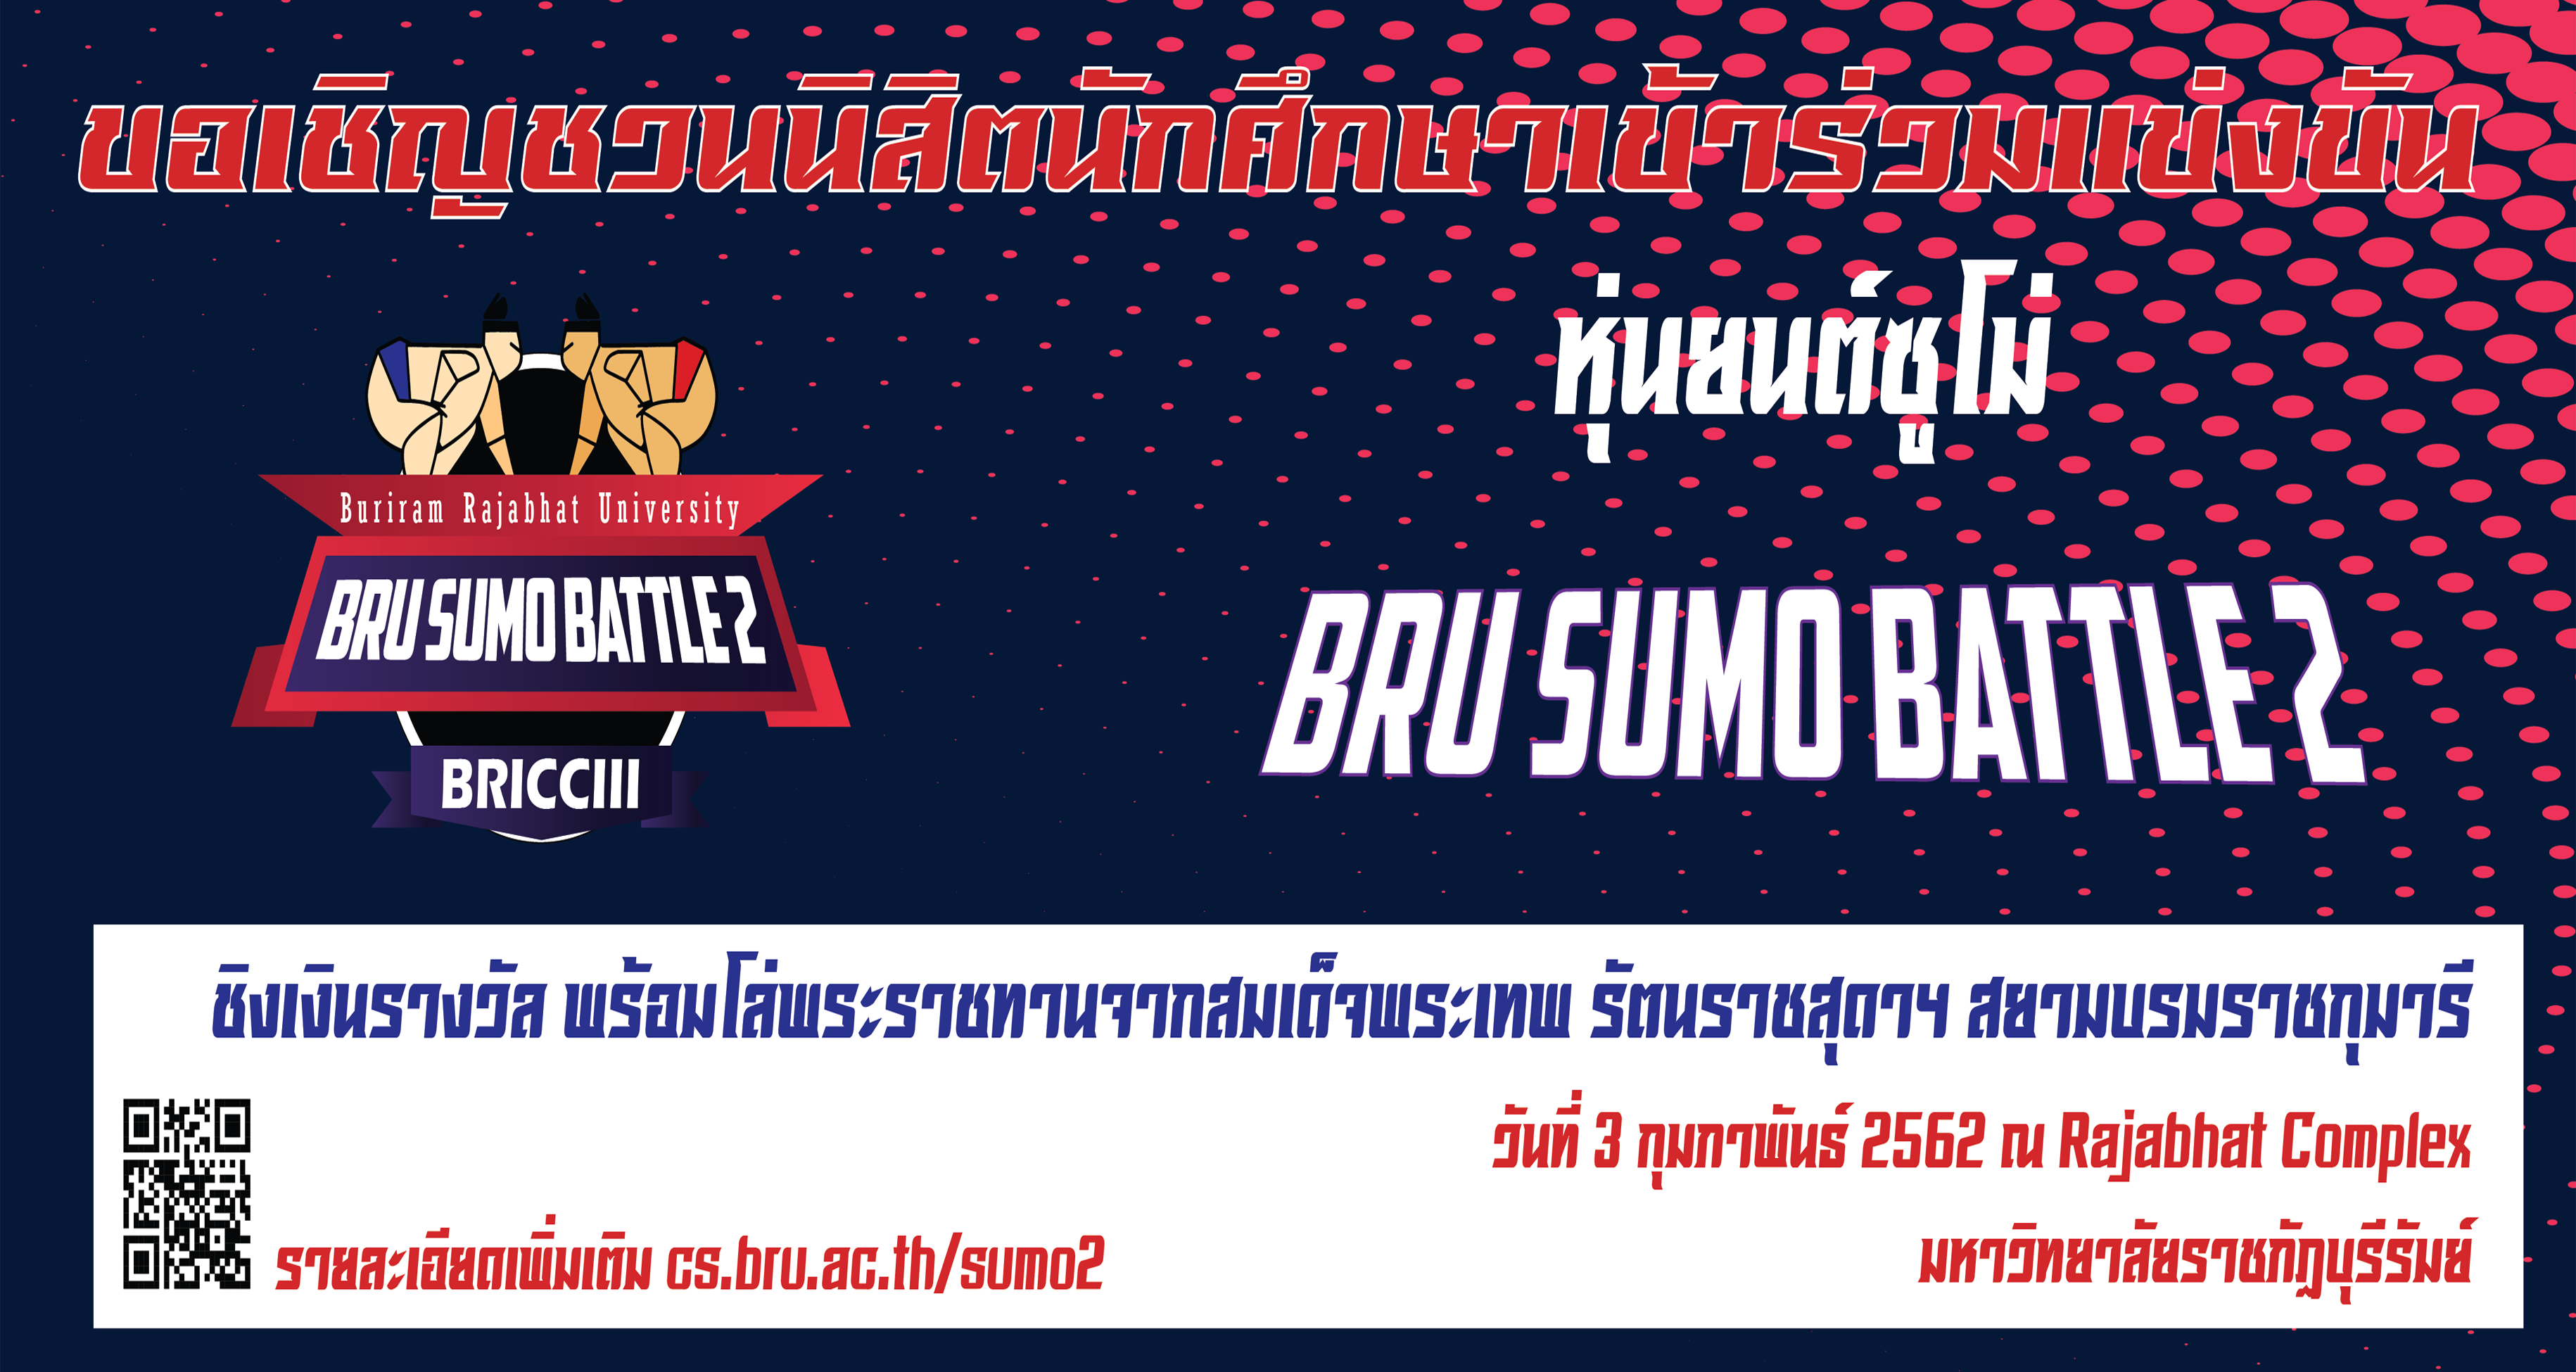 BRU SUMO BATTLE 2